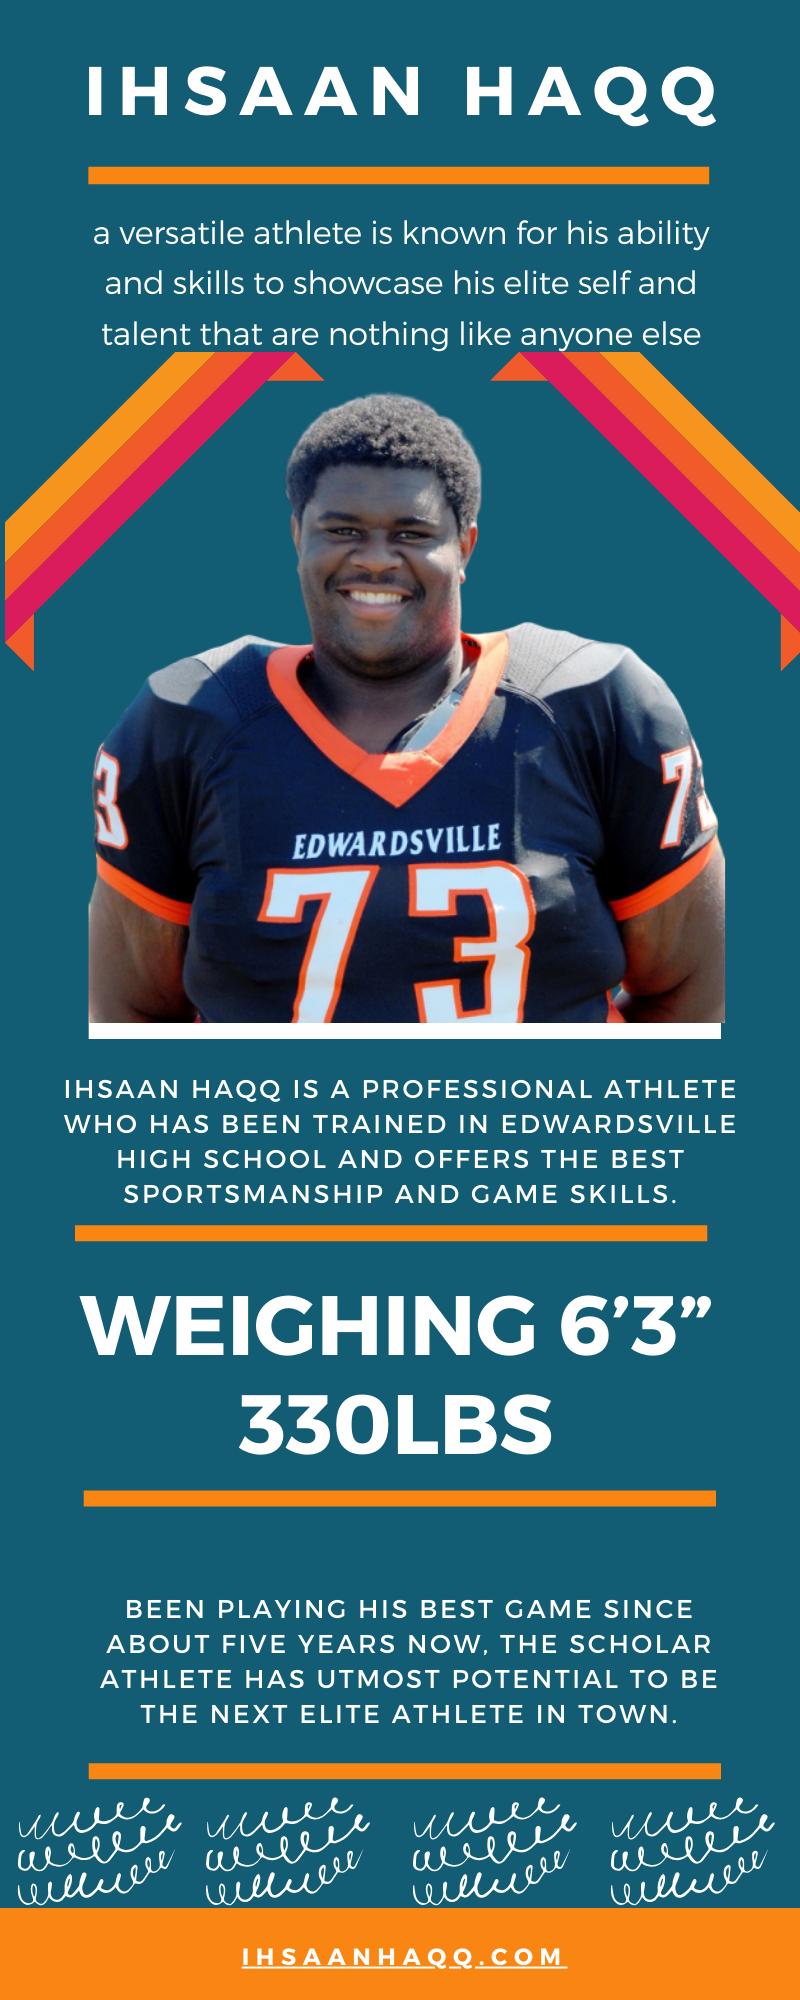 Ihsaan Haqq, an elite athlete from Edwardsville High School is here for the long run show